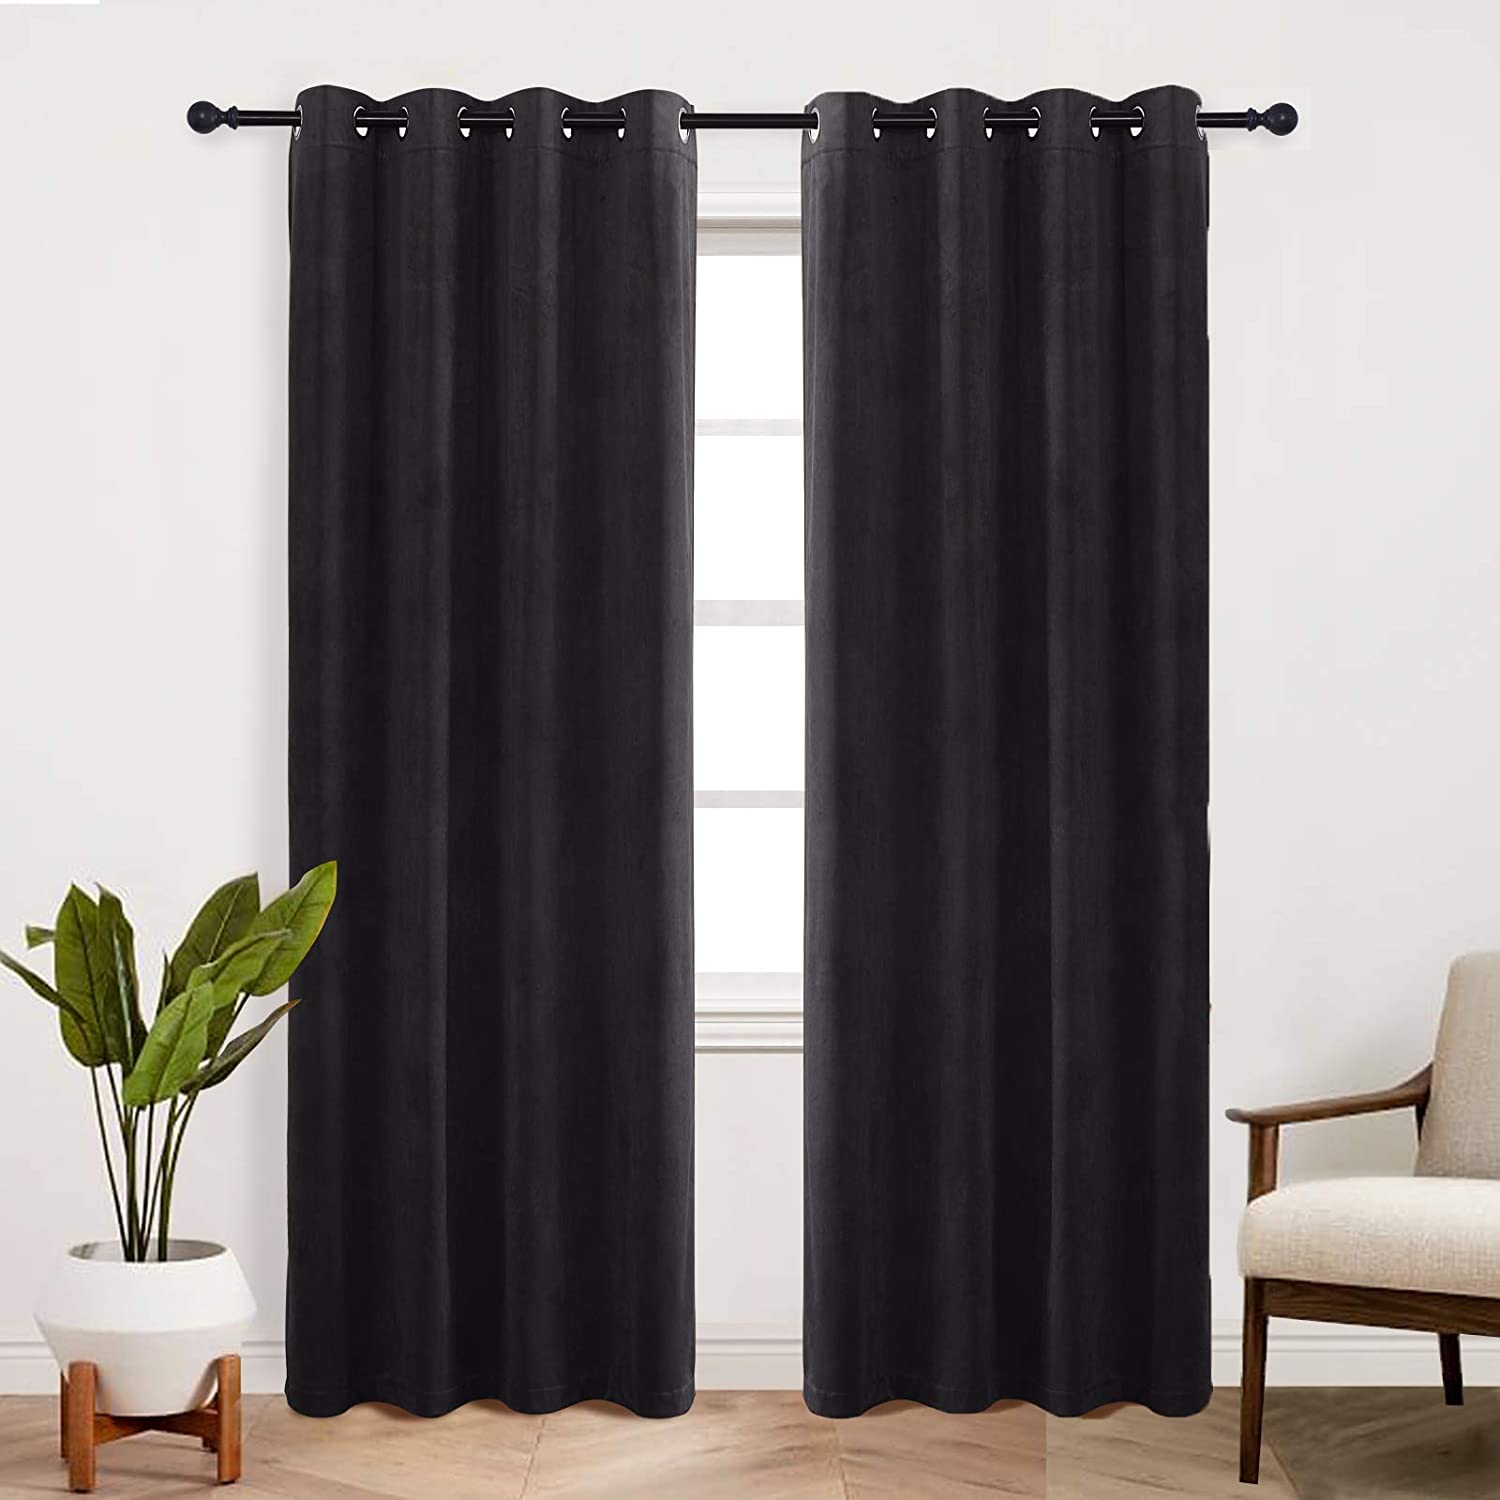 StangH Black Velvet Curtains 96 inches - Grommet Blackout Curtain Panels Energy Smart Thermal Insulated Window Drapes for Living Room / Dining / Home Office, Black, W52 x L96, 1 Panel